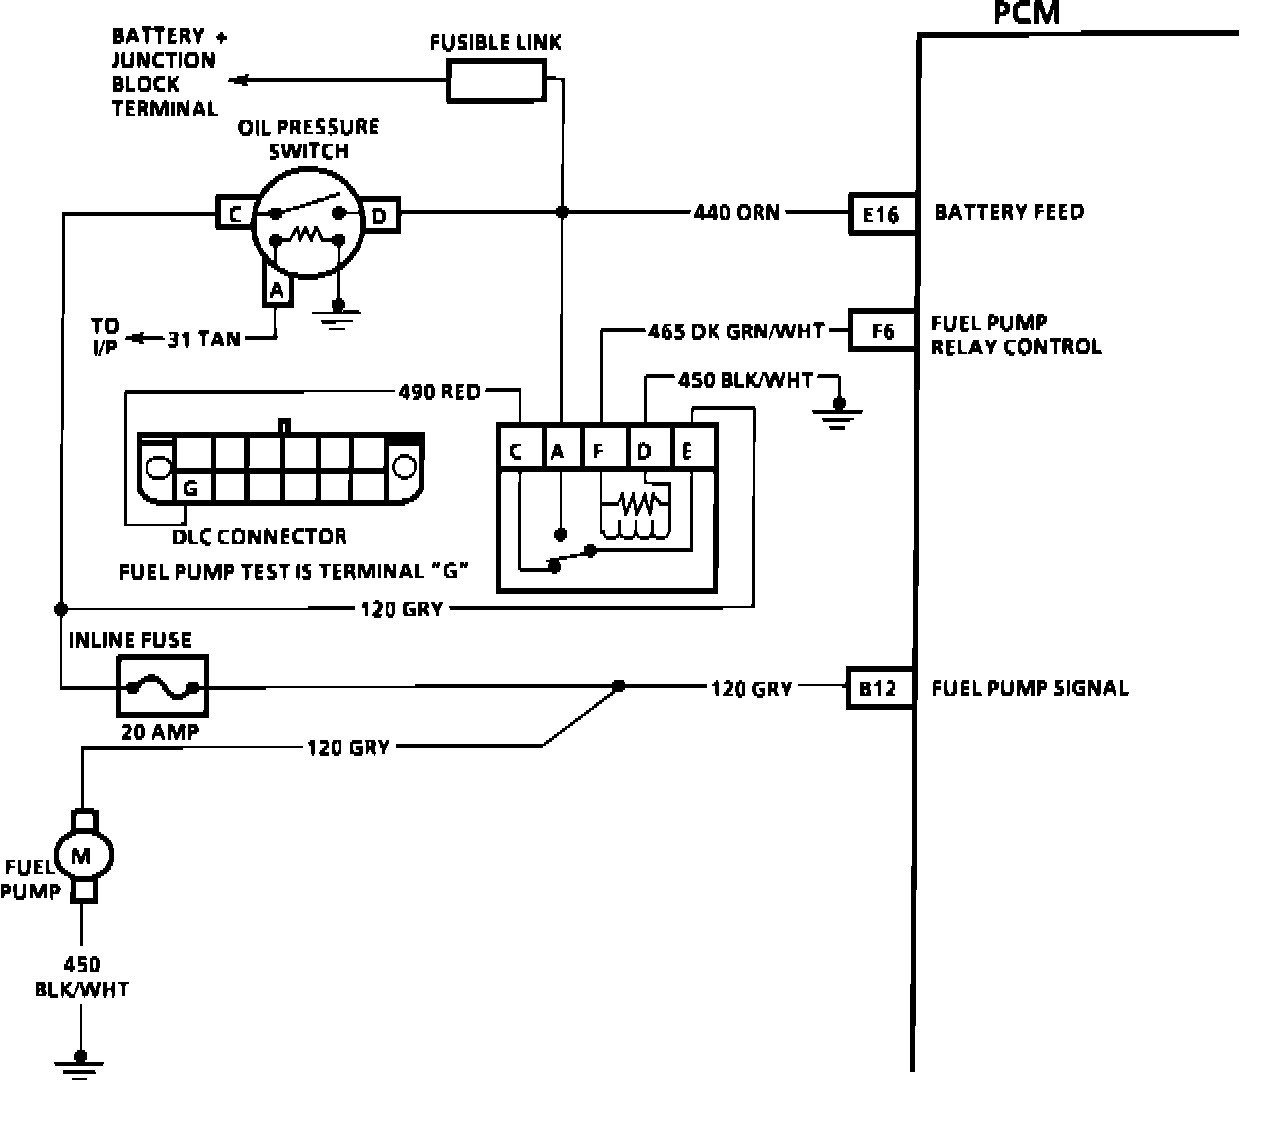 Where Is The Gas Relay Located On A 1994 Chevy Cheyenne 3500 1 Ton 440 Big Block Wiring Diagram Graphic